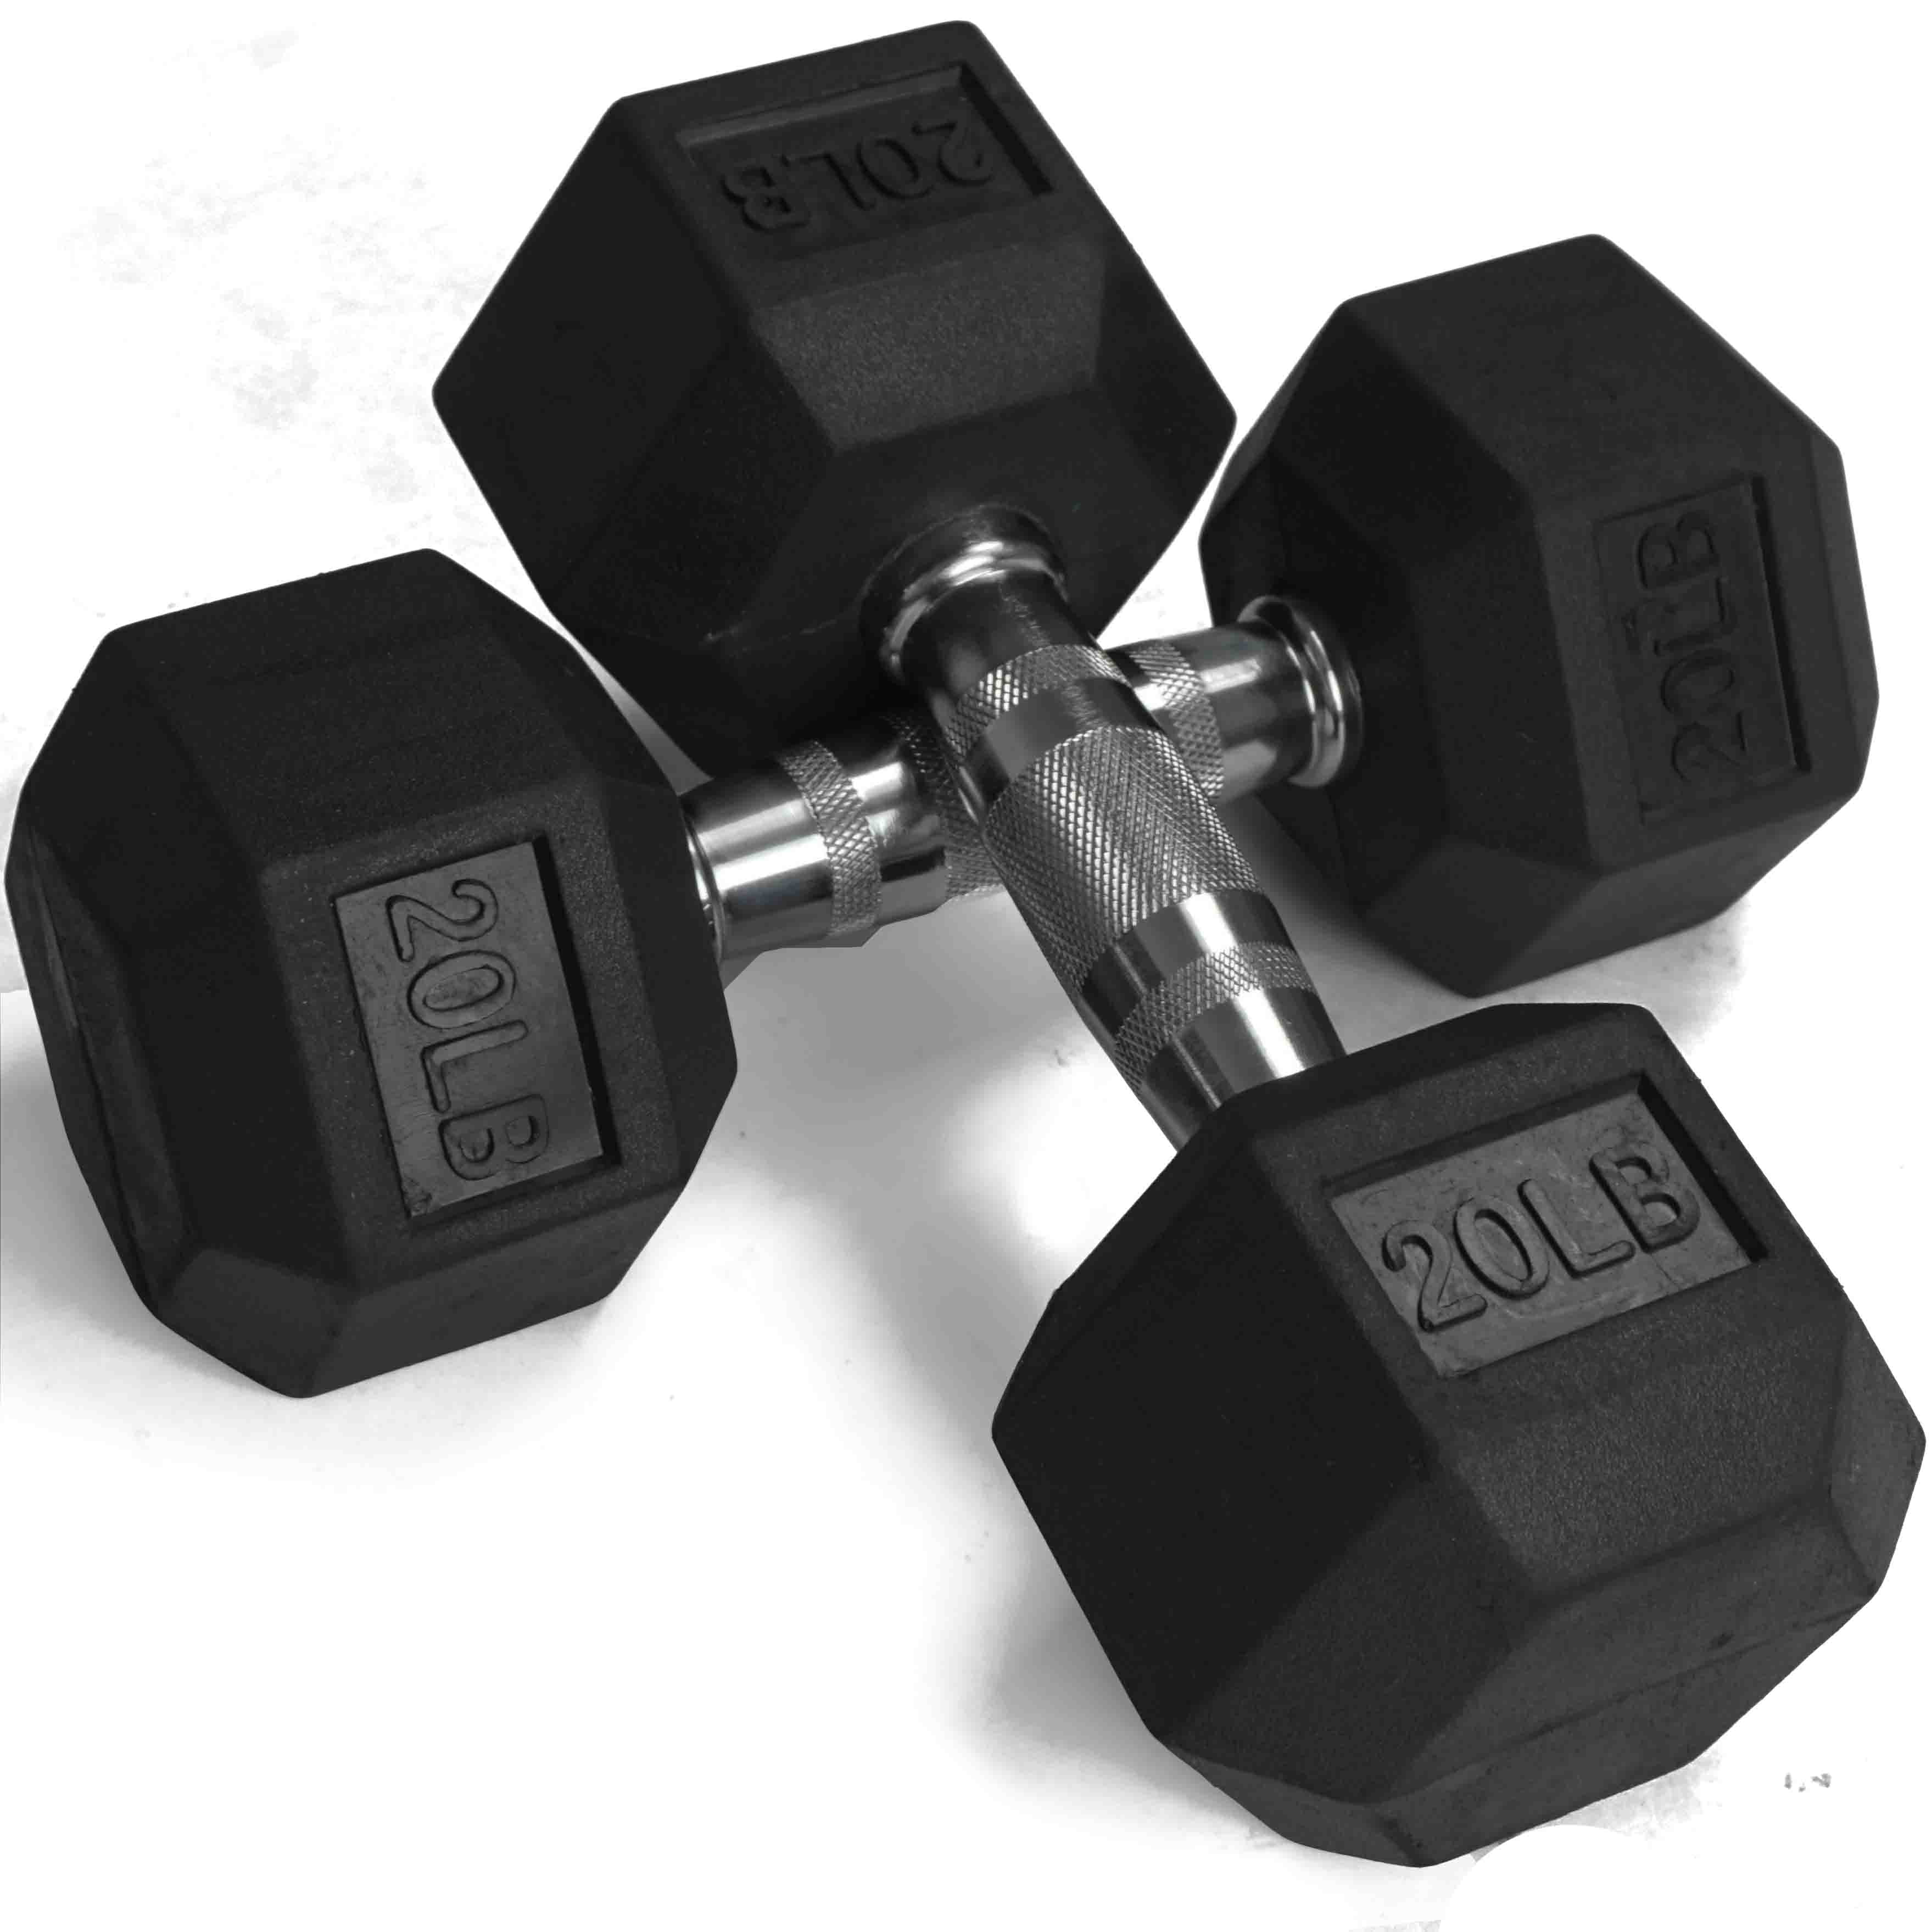 Pair of 20 lb Black Rubber Coated Hex Dumbbells Weight Training Set, 40 lb by Titan Fitness